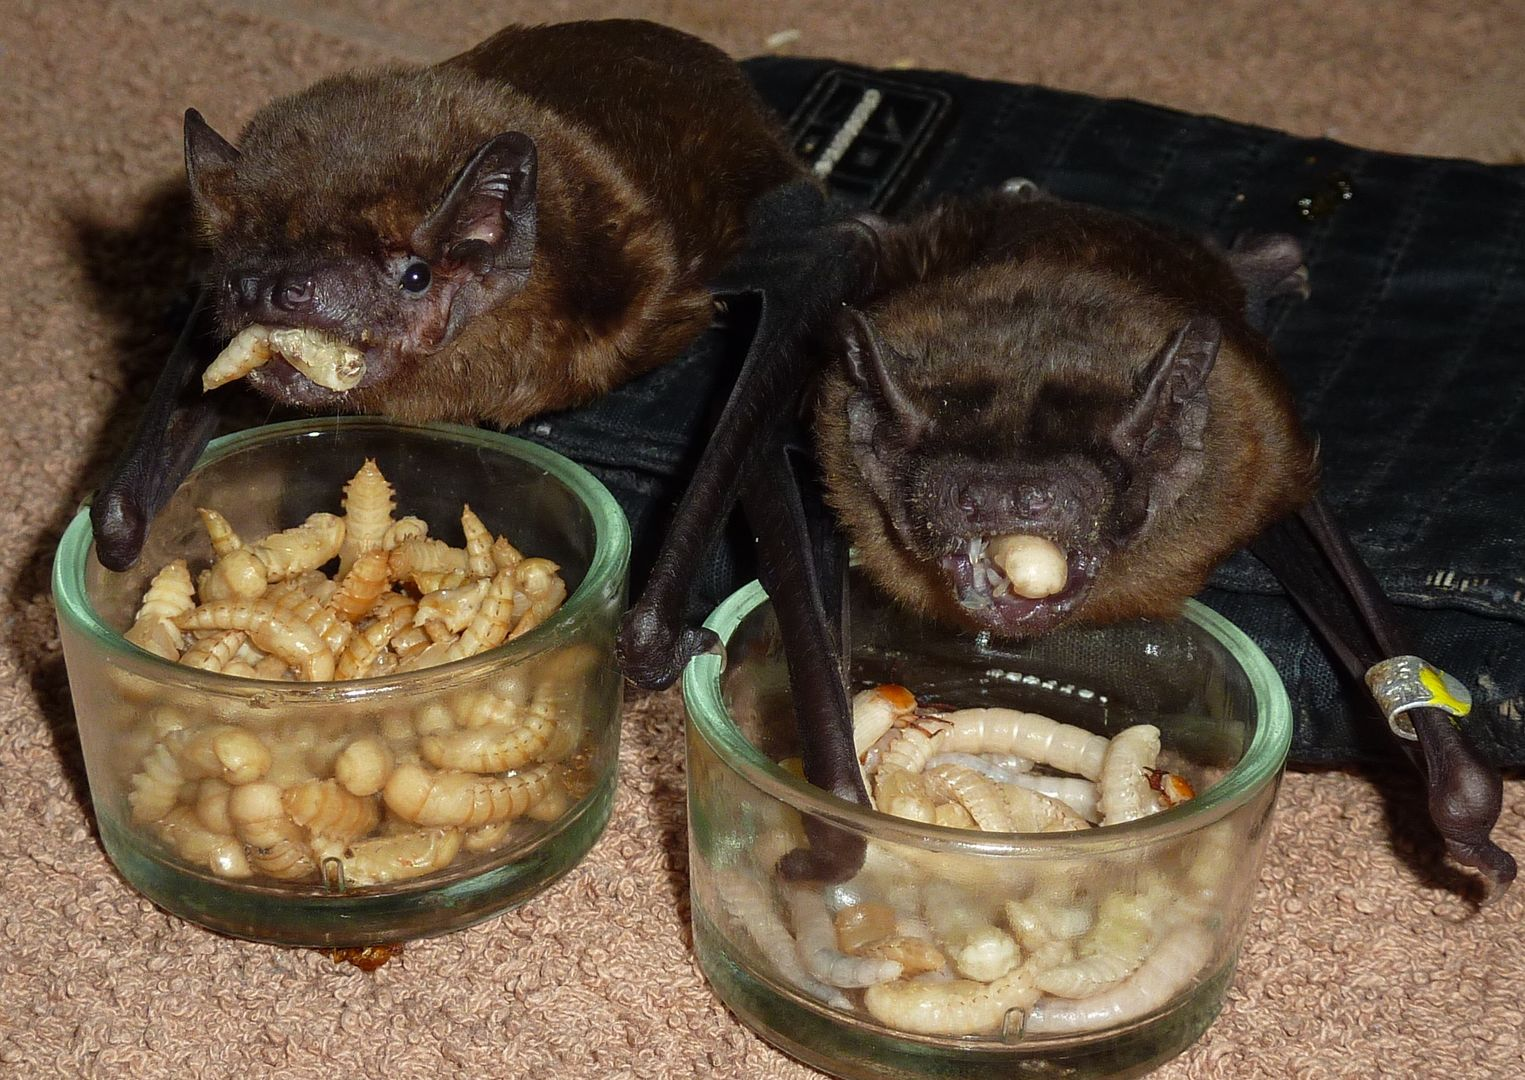 das Foto zeigt zwei Große Abendseglerinnen beim Essen // the photo shows two female nyctalus noctula while eating